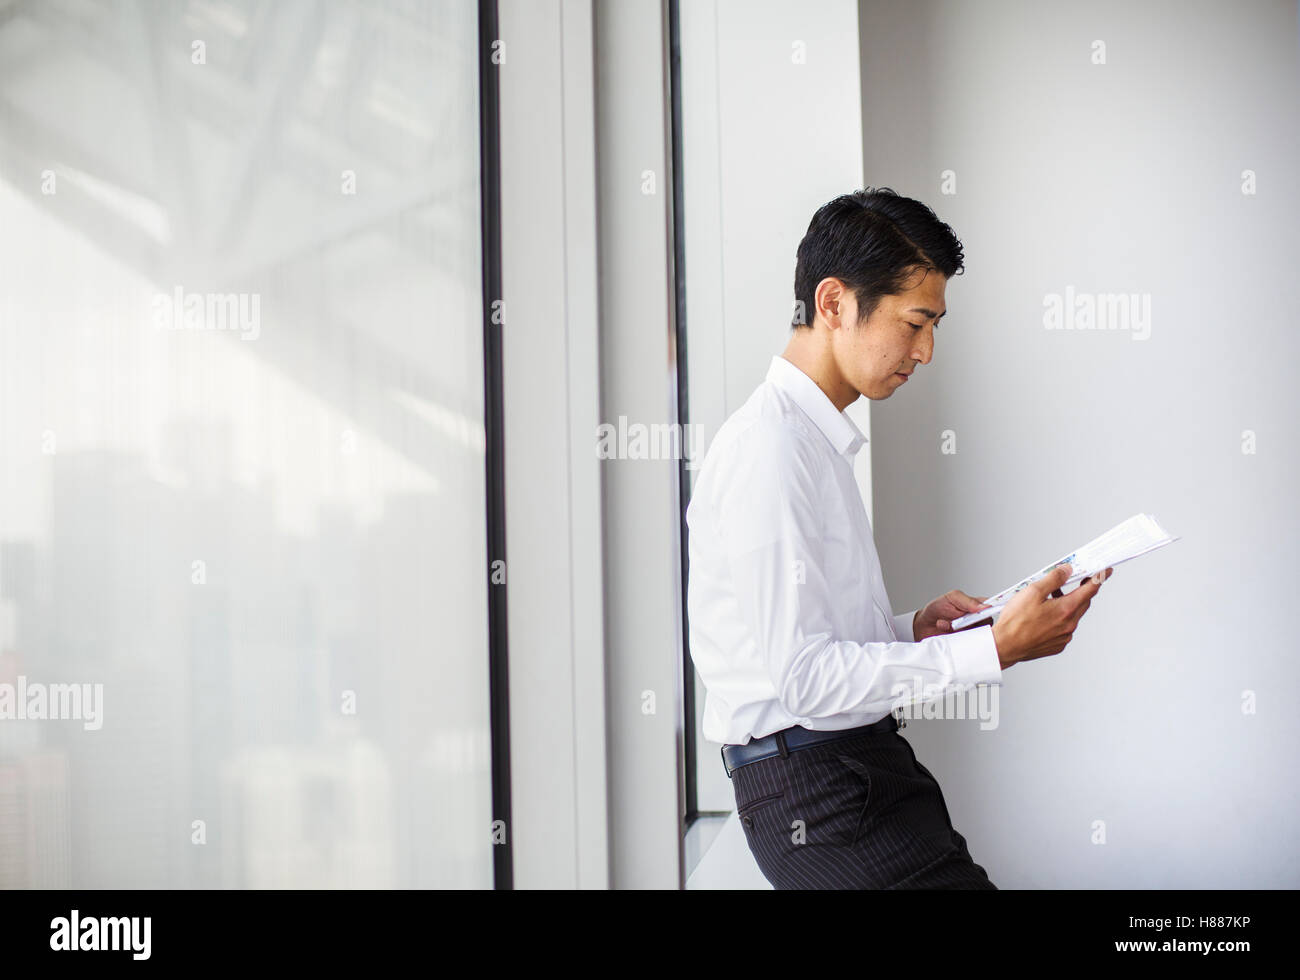 A businessman in the office, by a large window reading paperwork. leaning against the window sill. City office. - Stock Image